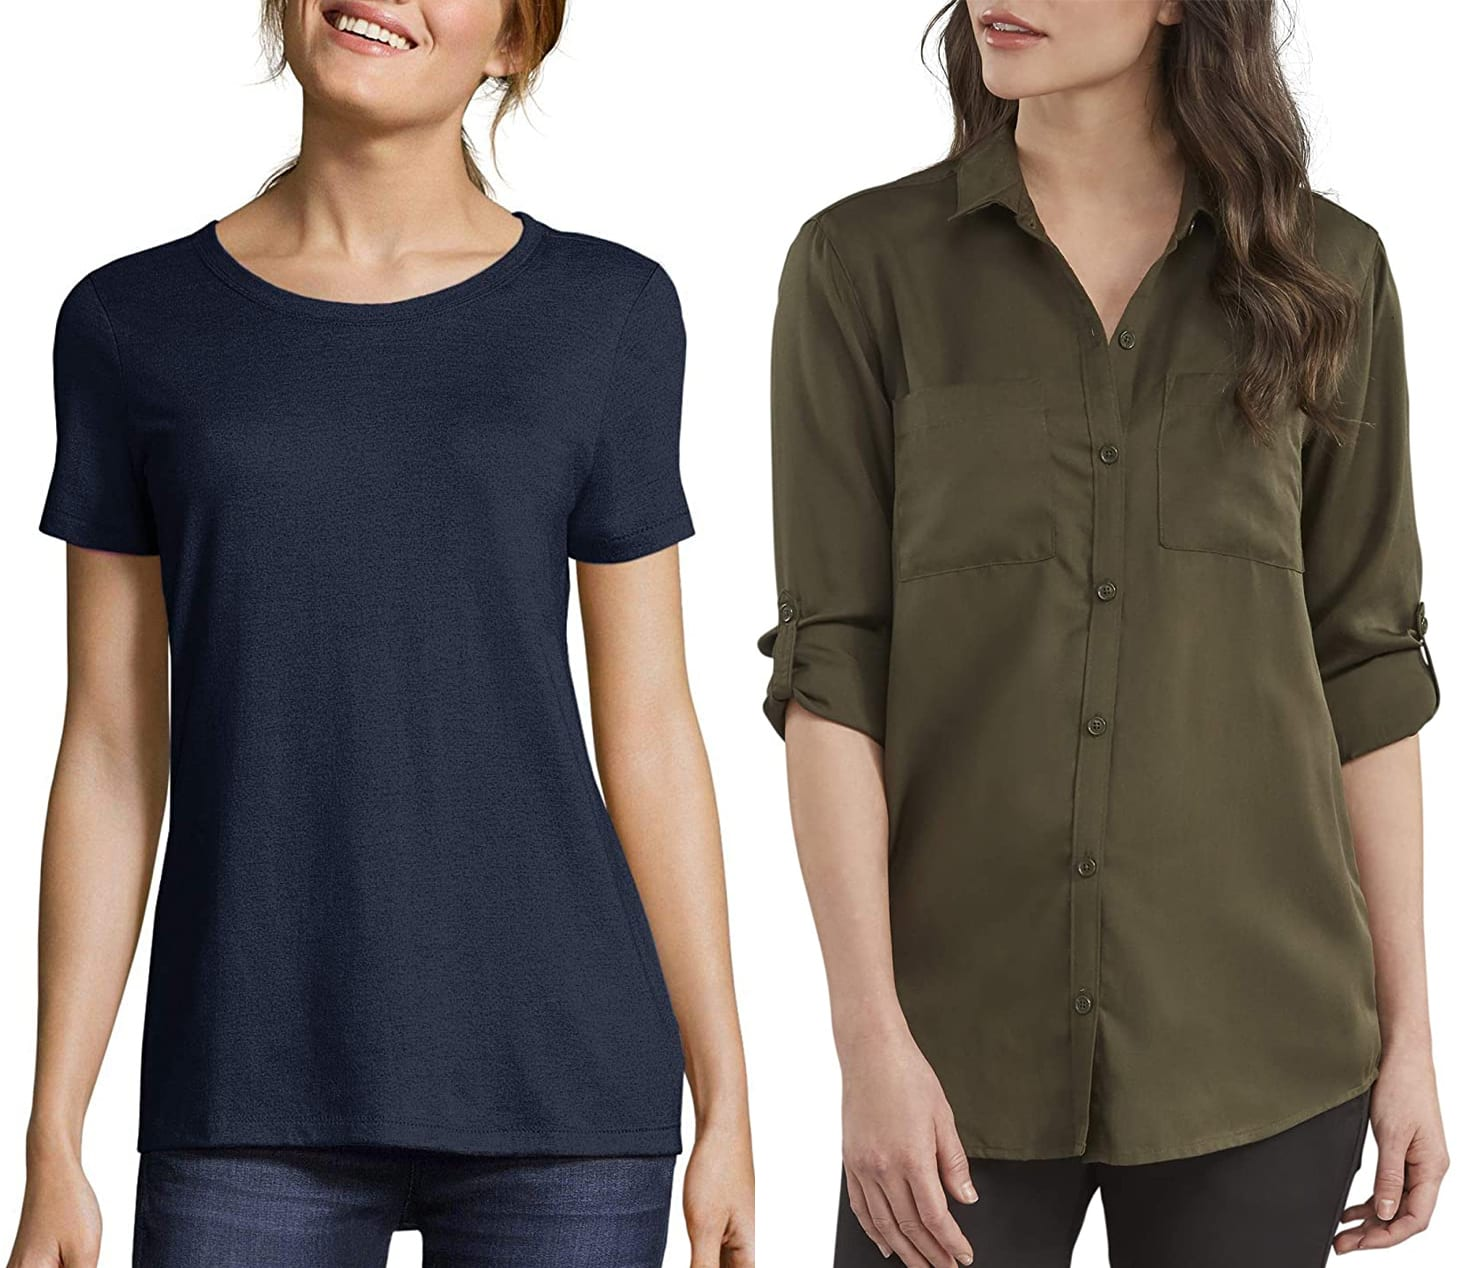 Modal (left) and lyocell (right) are two kinds of rayon fabric that are used in fashion